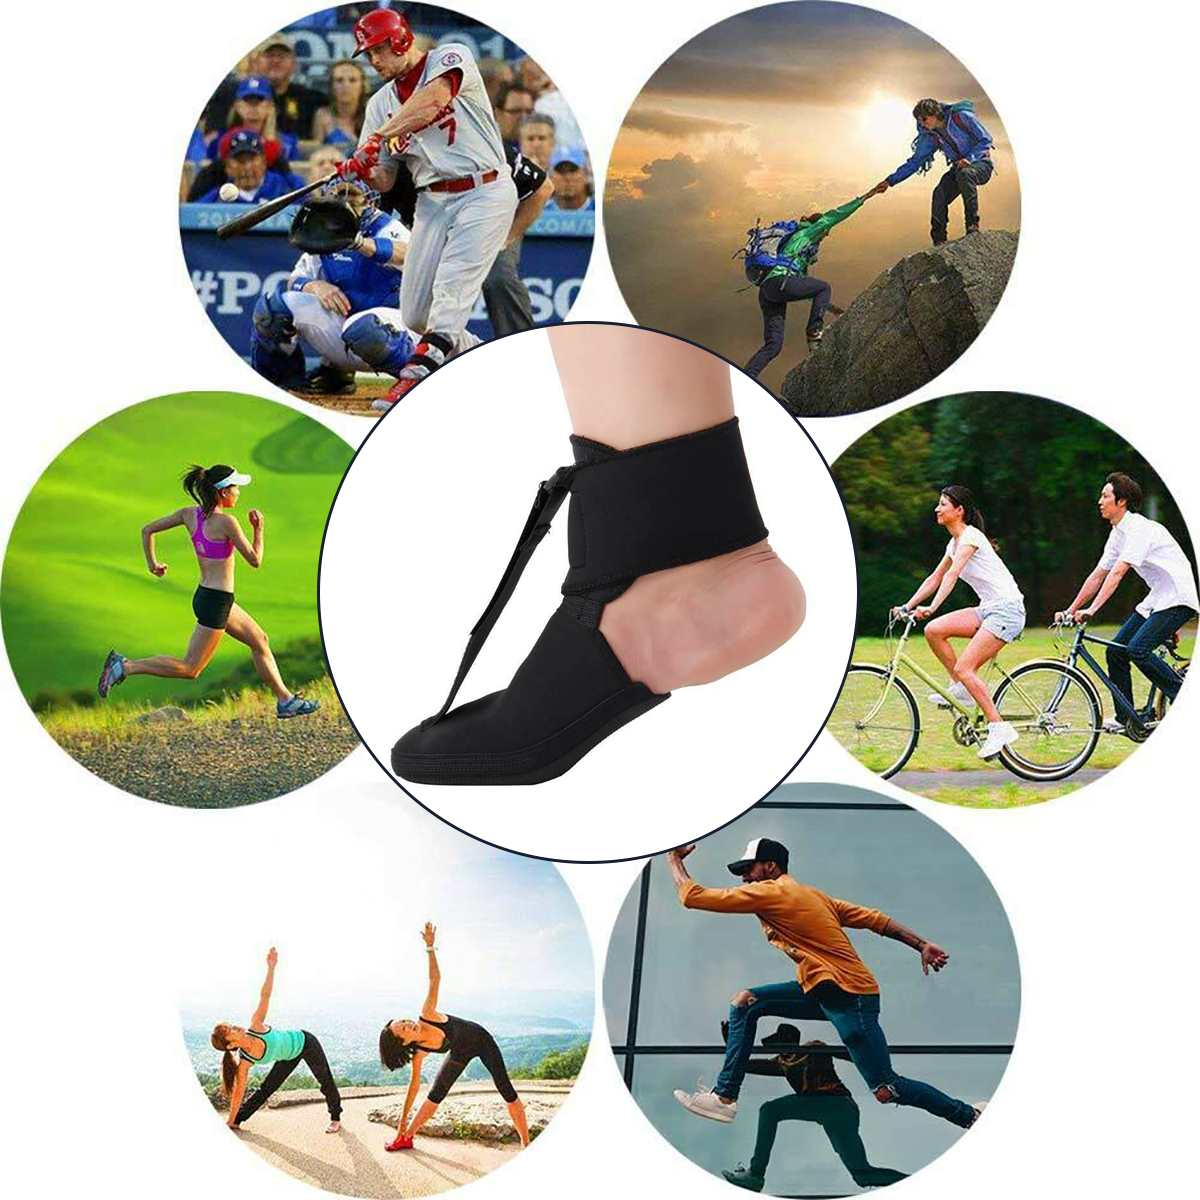 NEW S/M/L Black Adjustable Plantar Fasciitis Night Splint Sport Pain Toe Foot Brace Support Stabilizer Ankle Protector